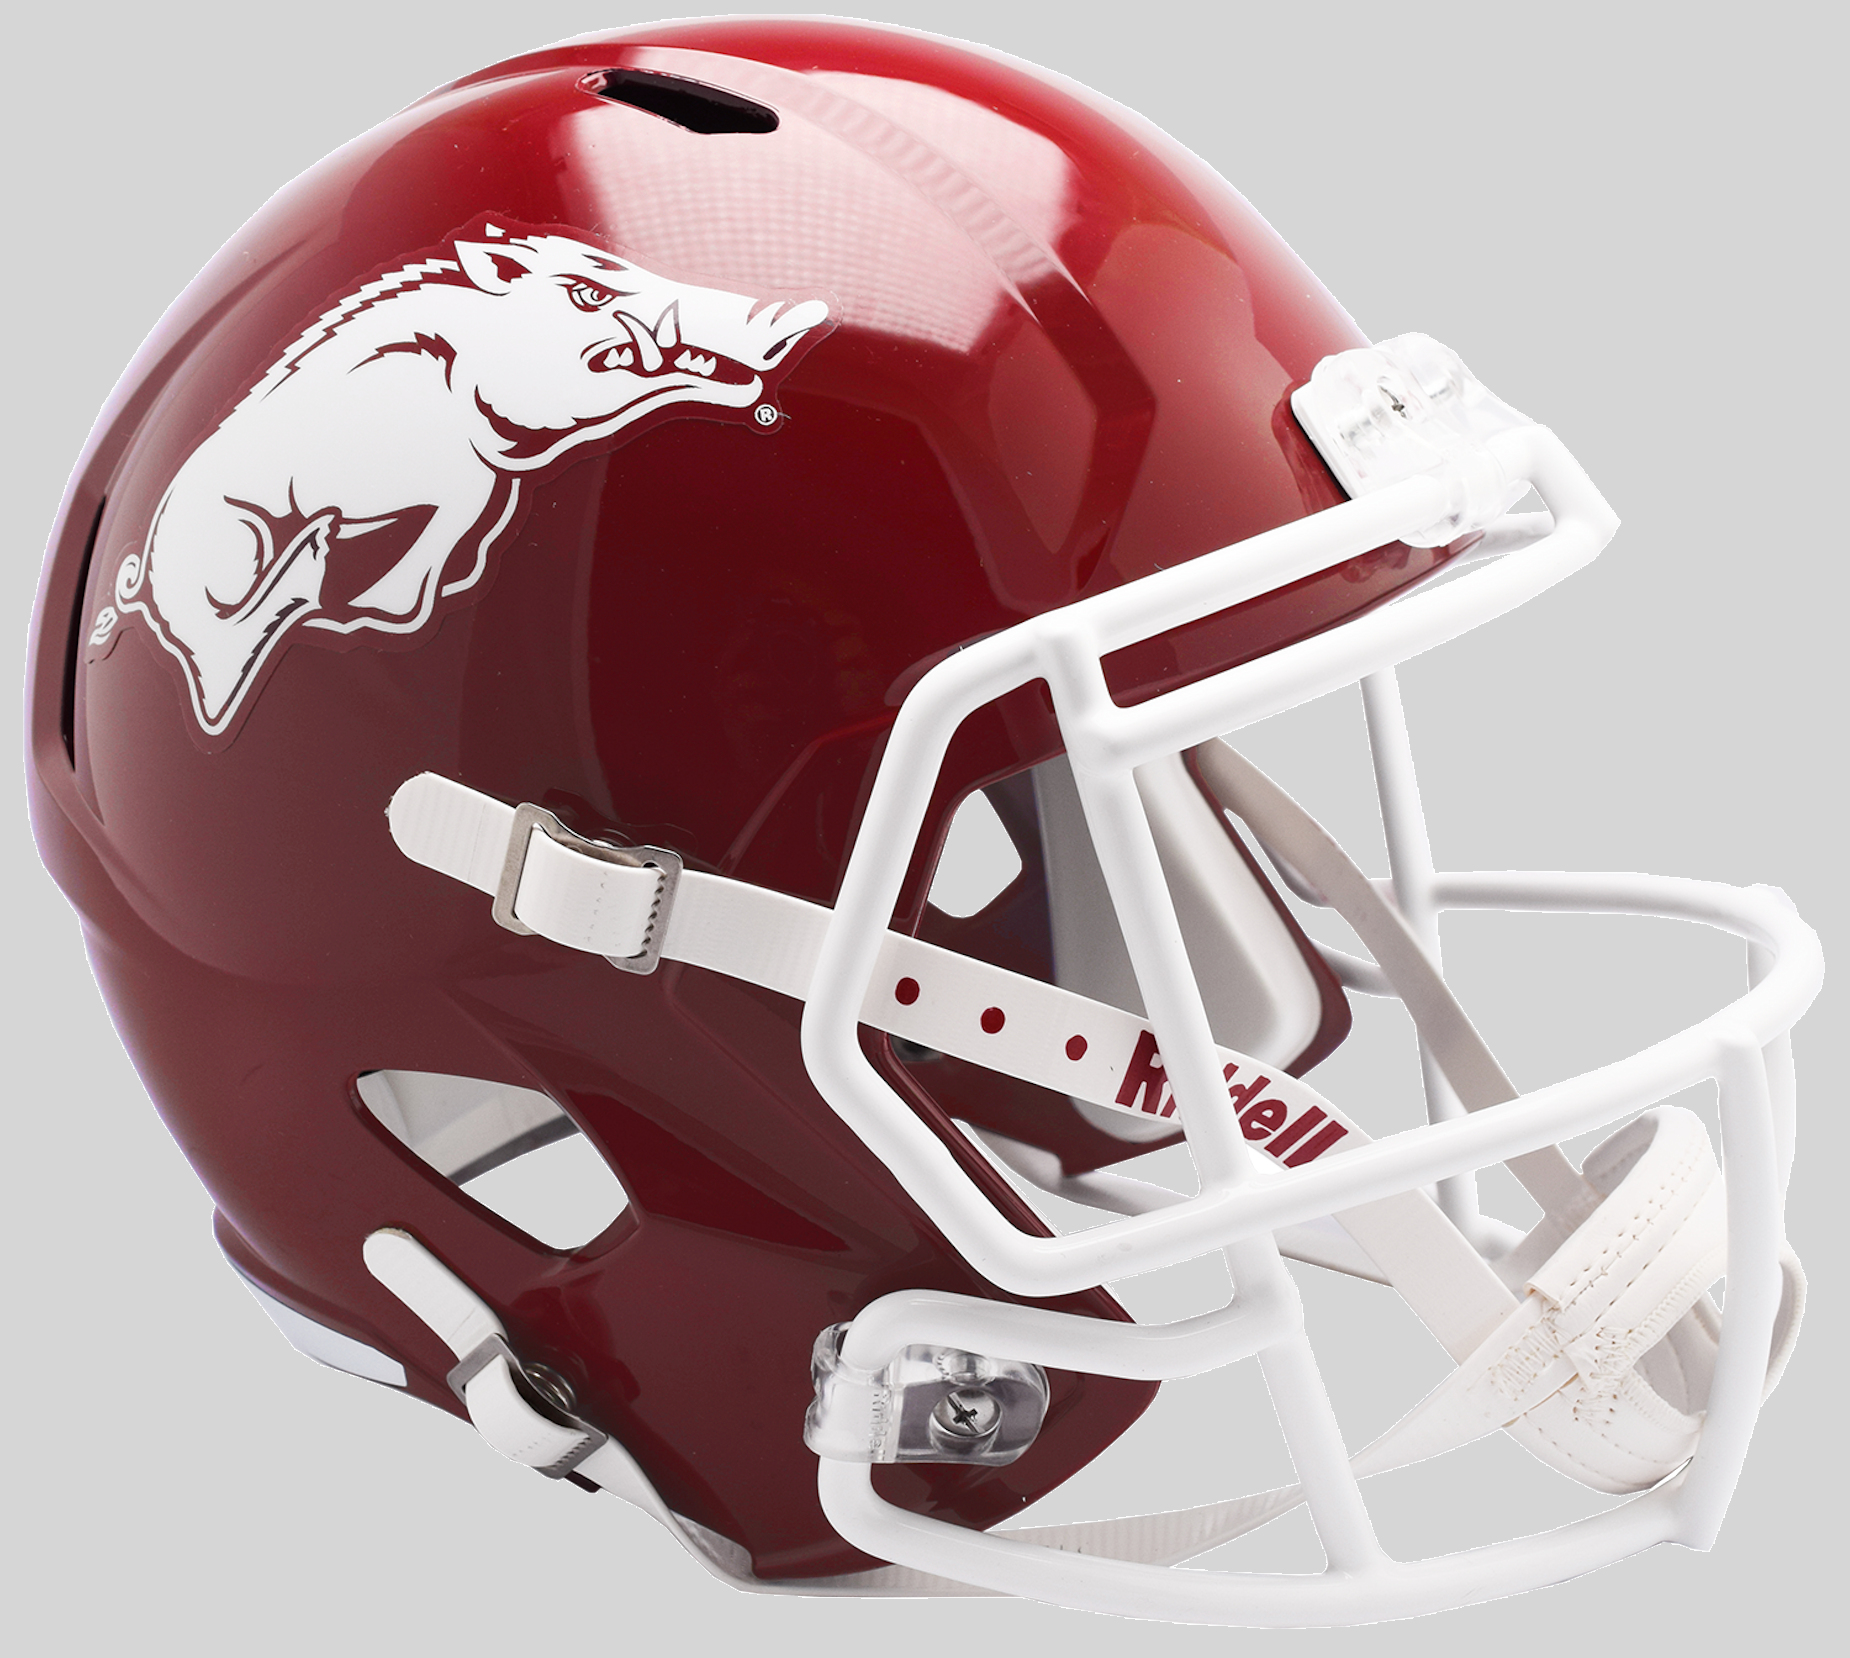 Arkansas Razorbacks Speed Replica Football Helmet <B>2018 Gloss</B>